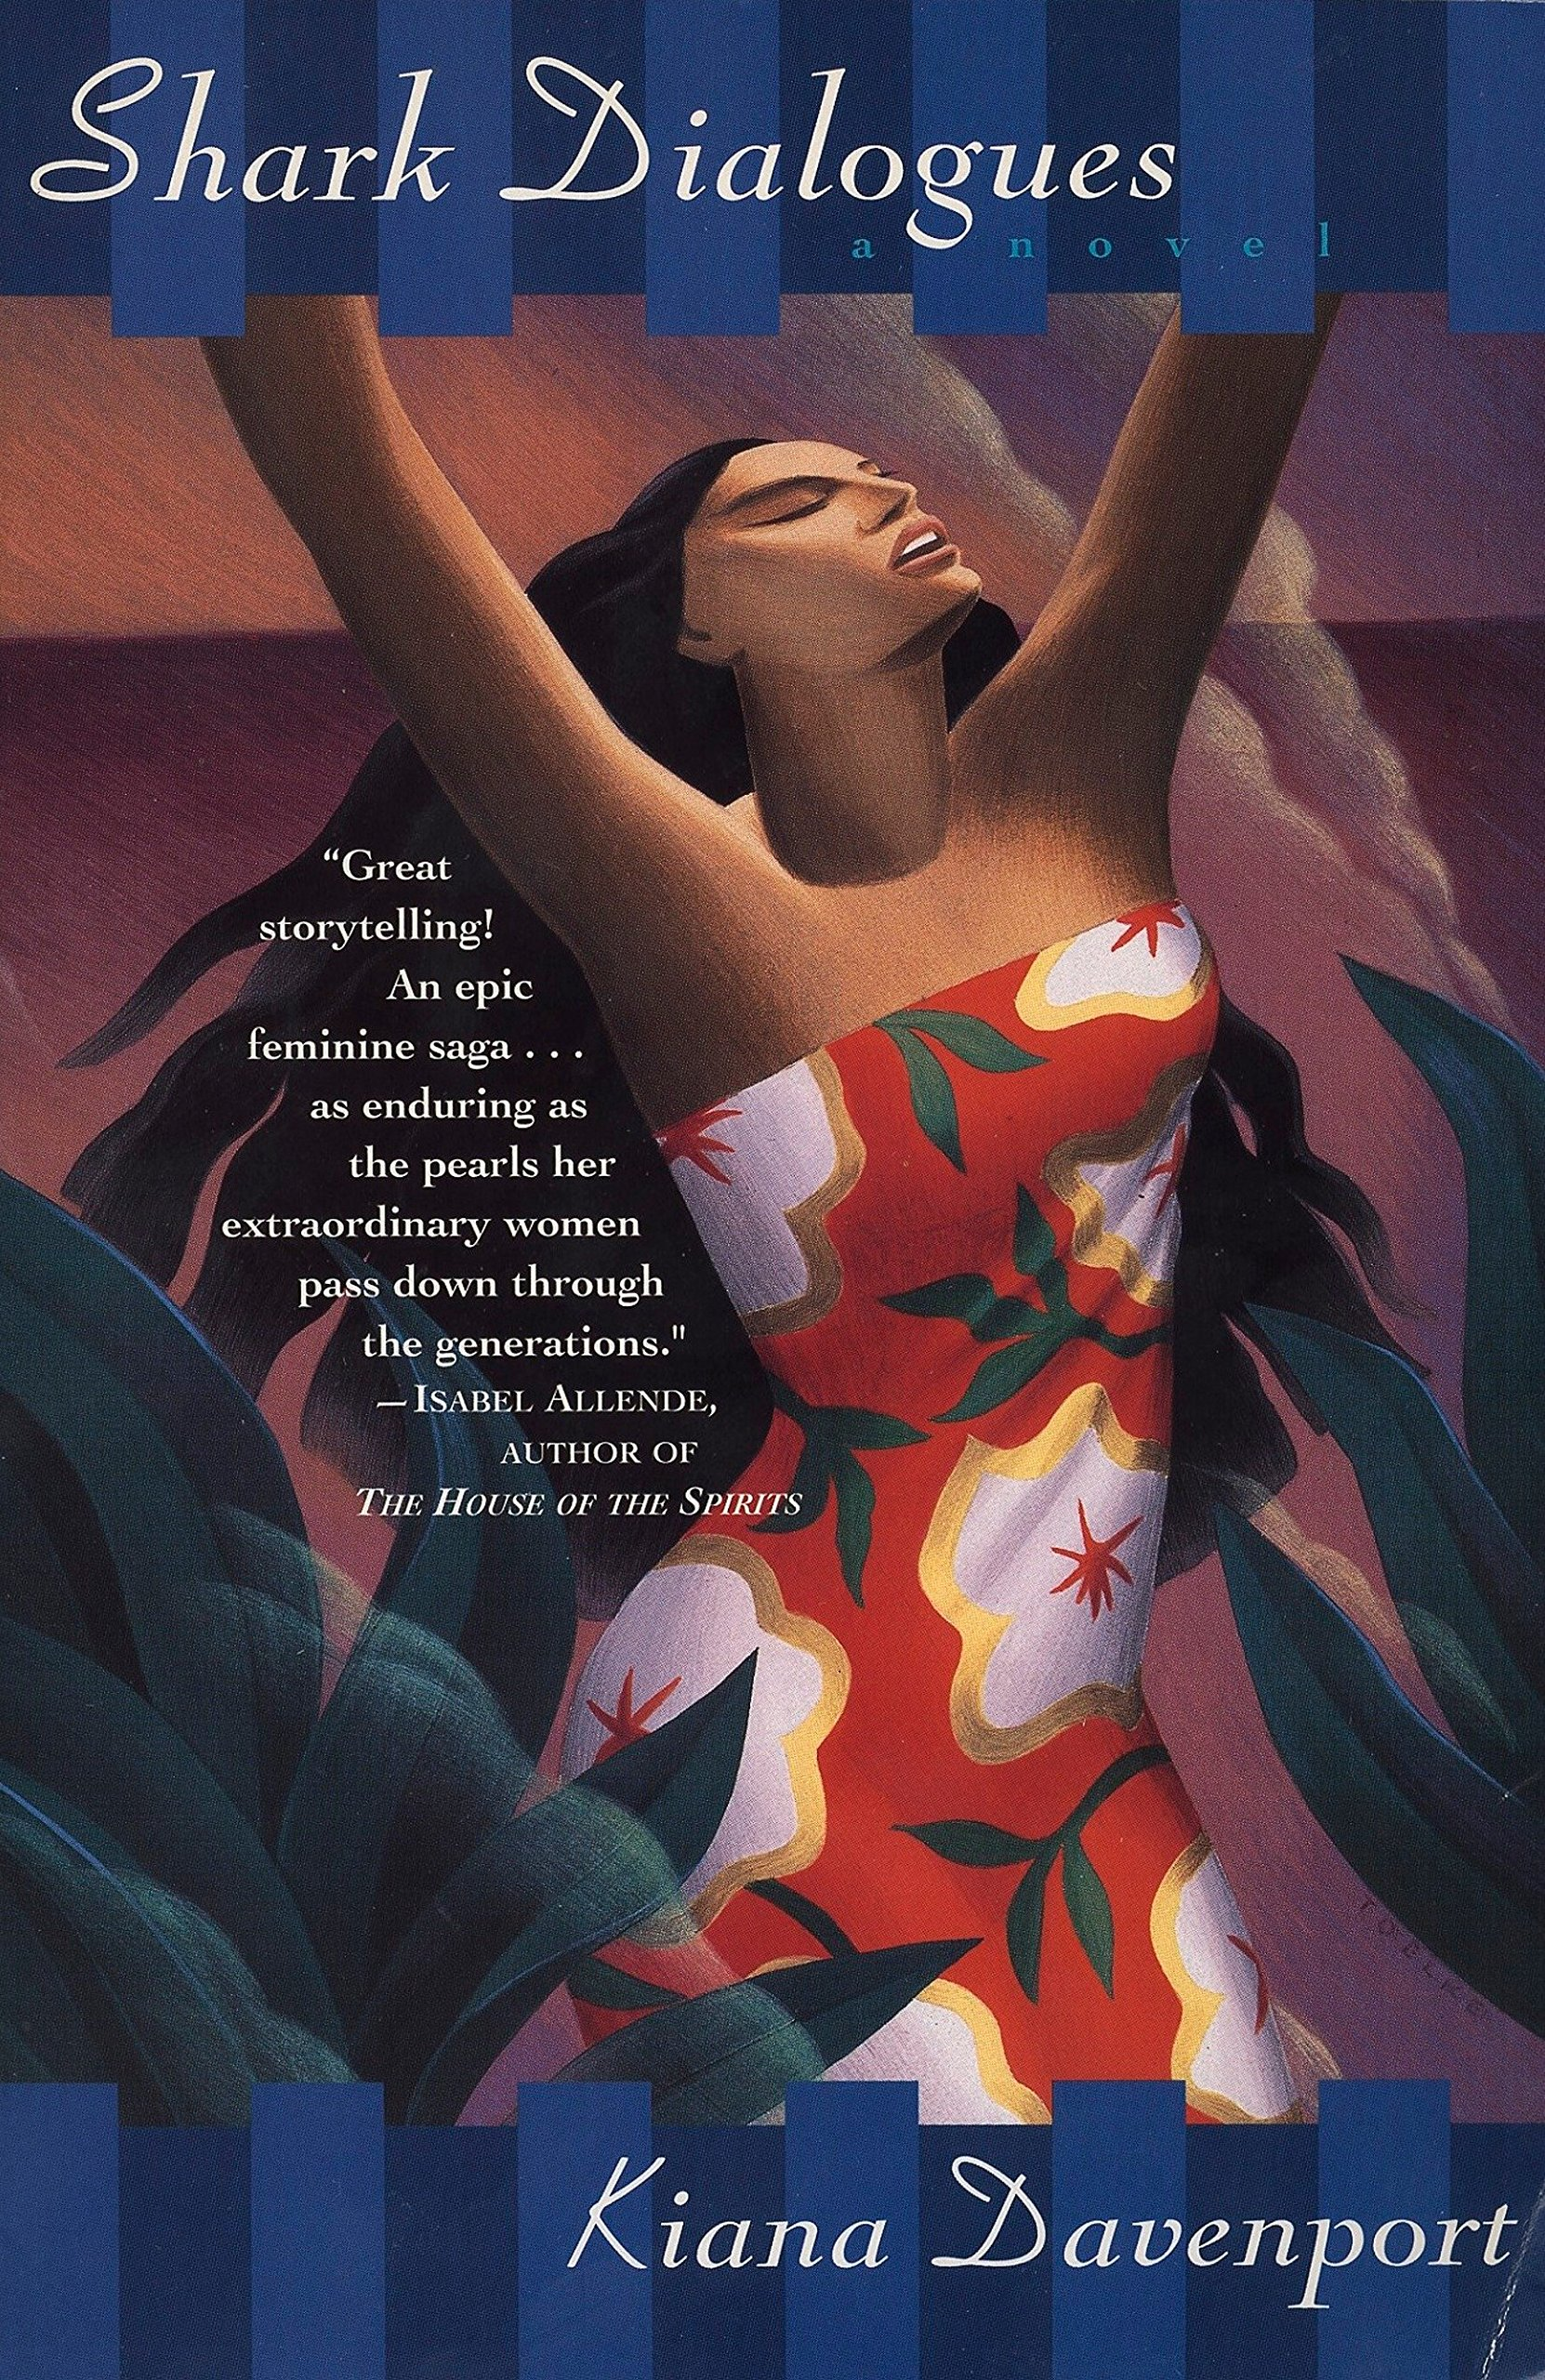 Book cover of shark dialogues. Woman with long, dark hair in floral dress raises arms up with eyes closed.